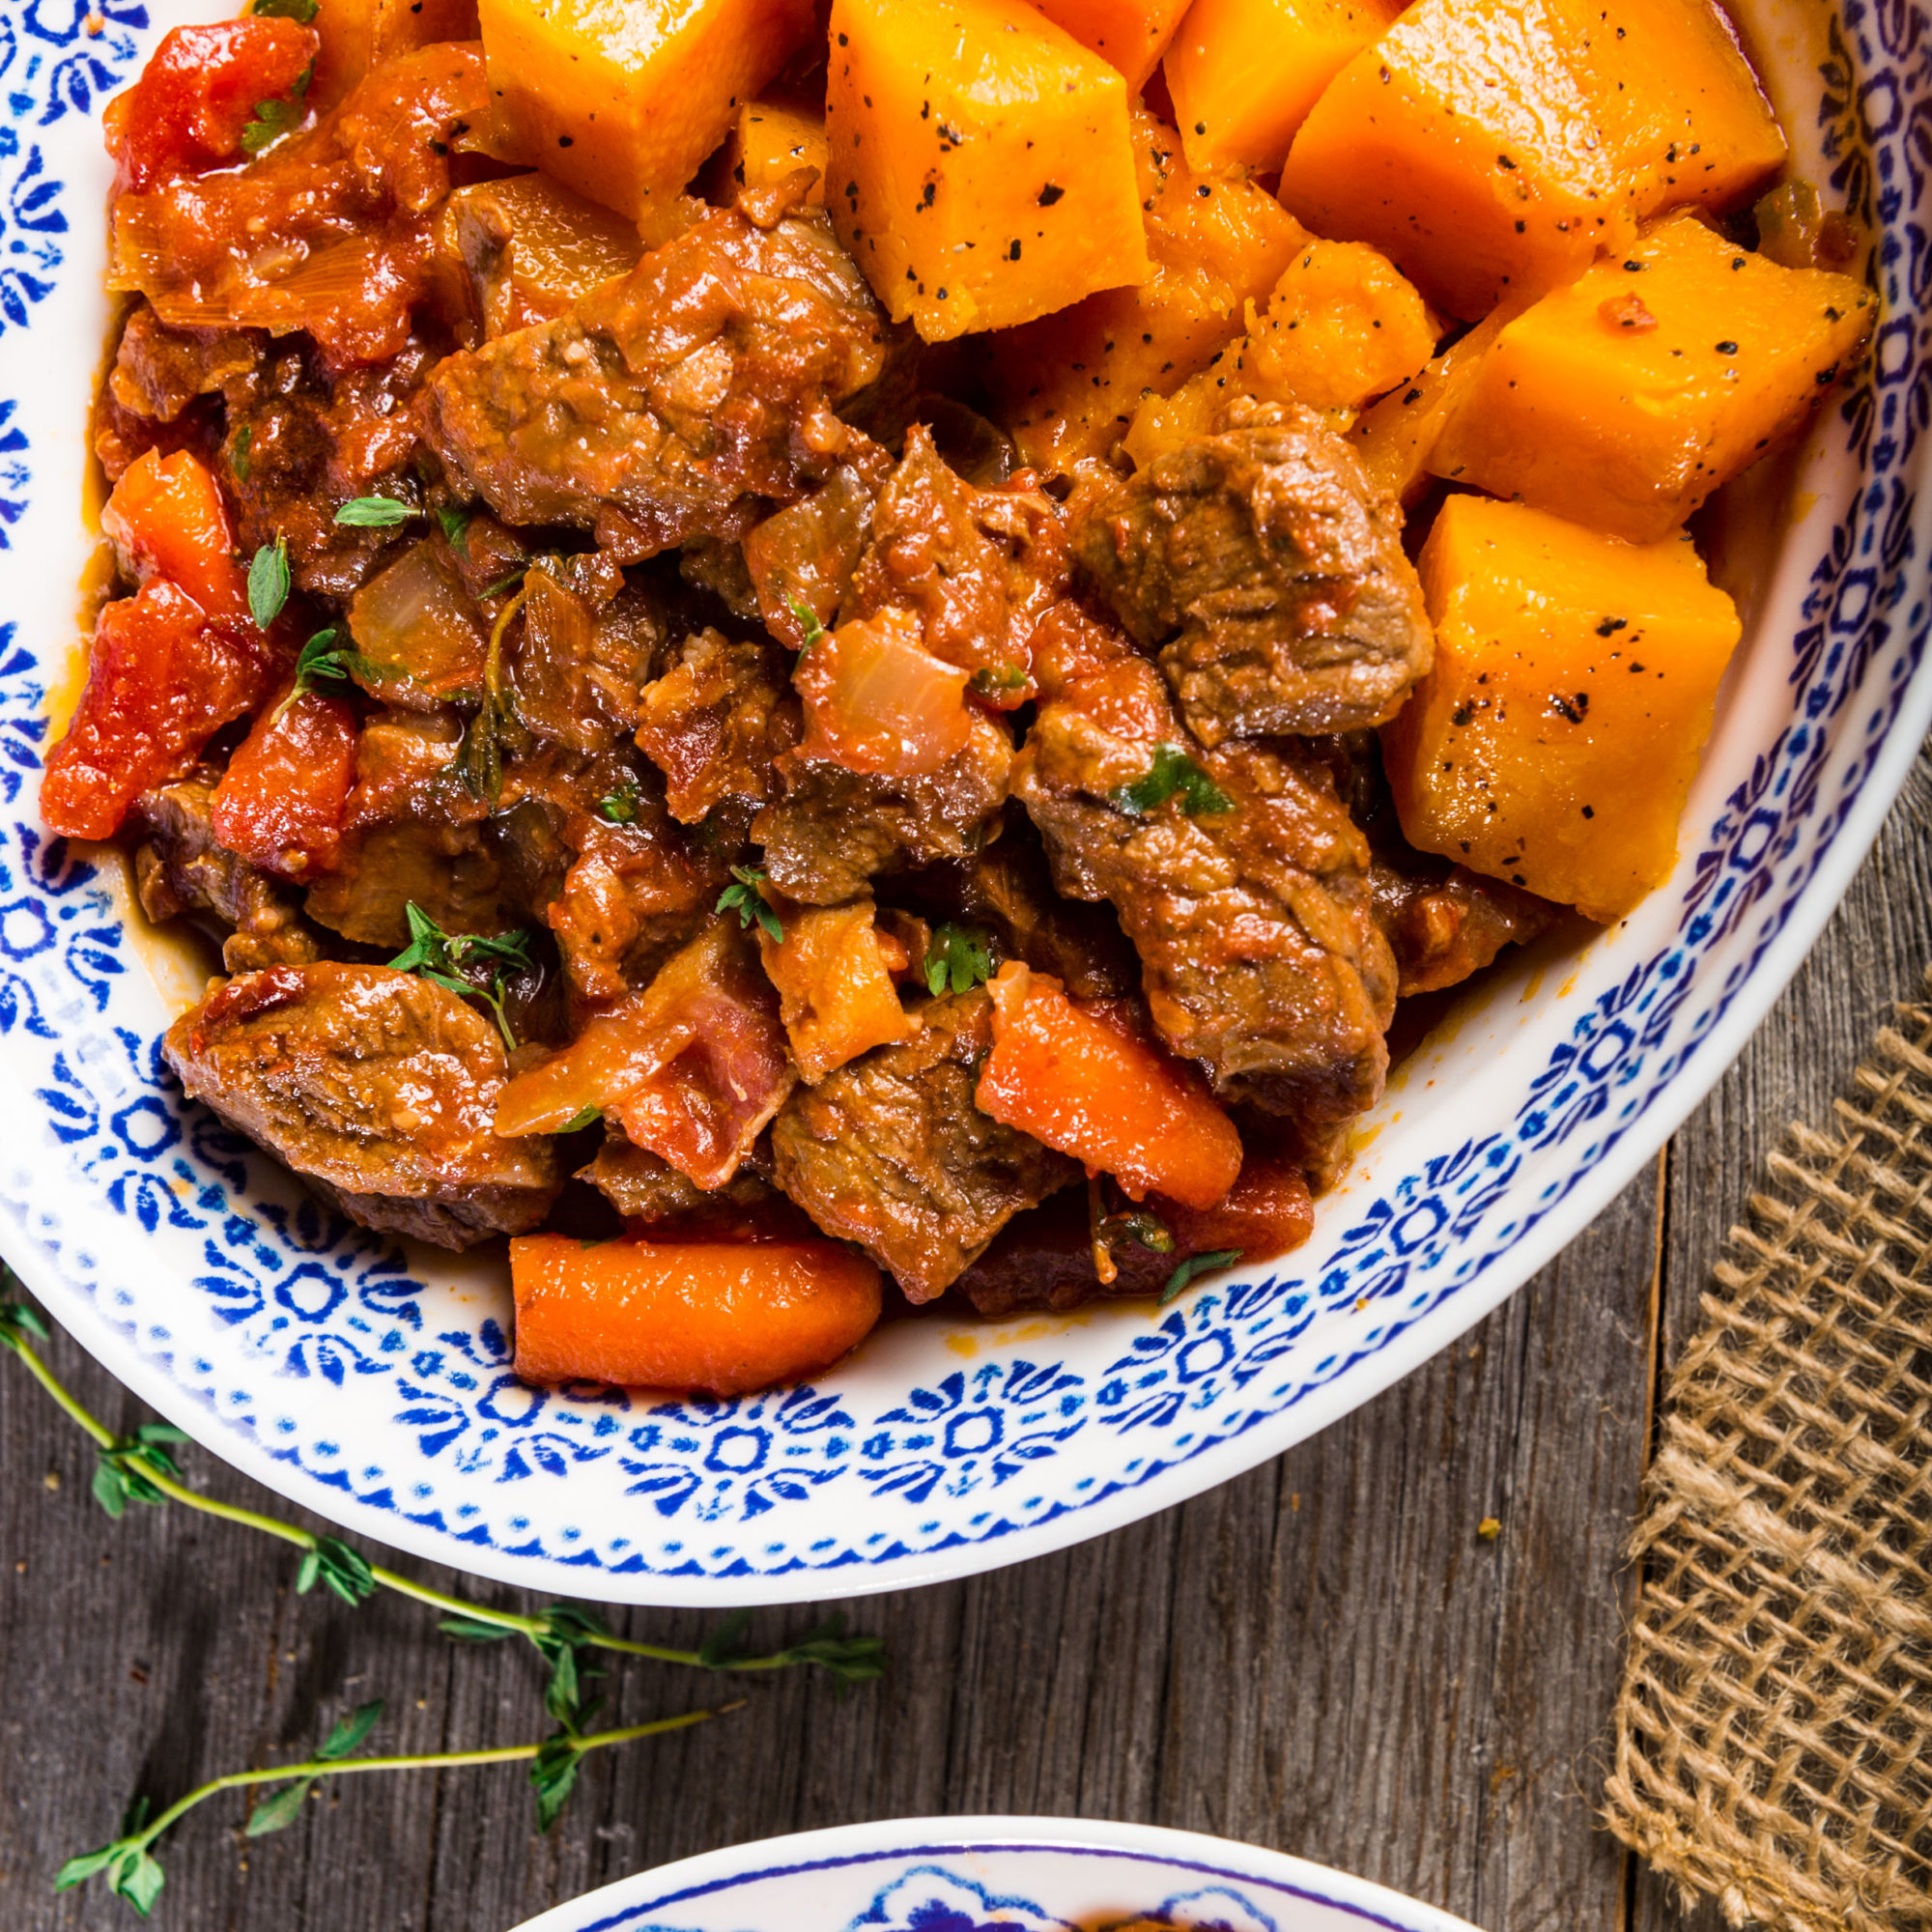 A spicy beef stew simmered in a smoky, chipotle flavored tomato sauce with fresh herbs